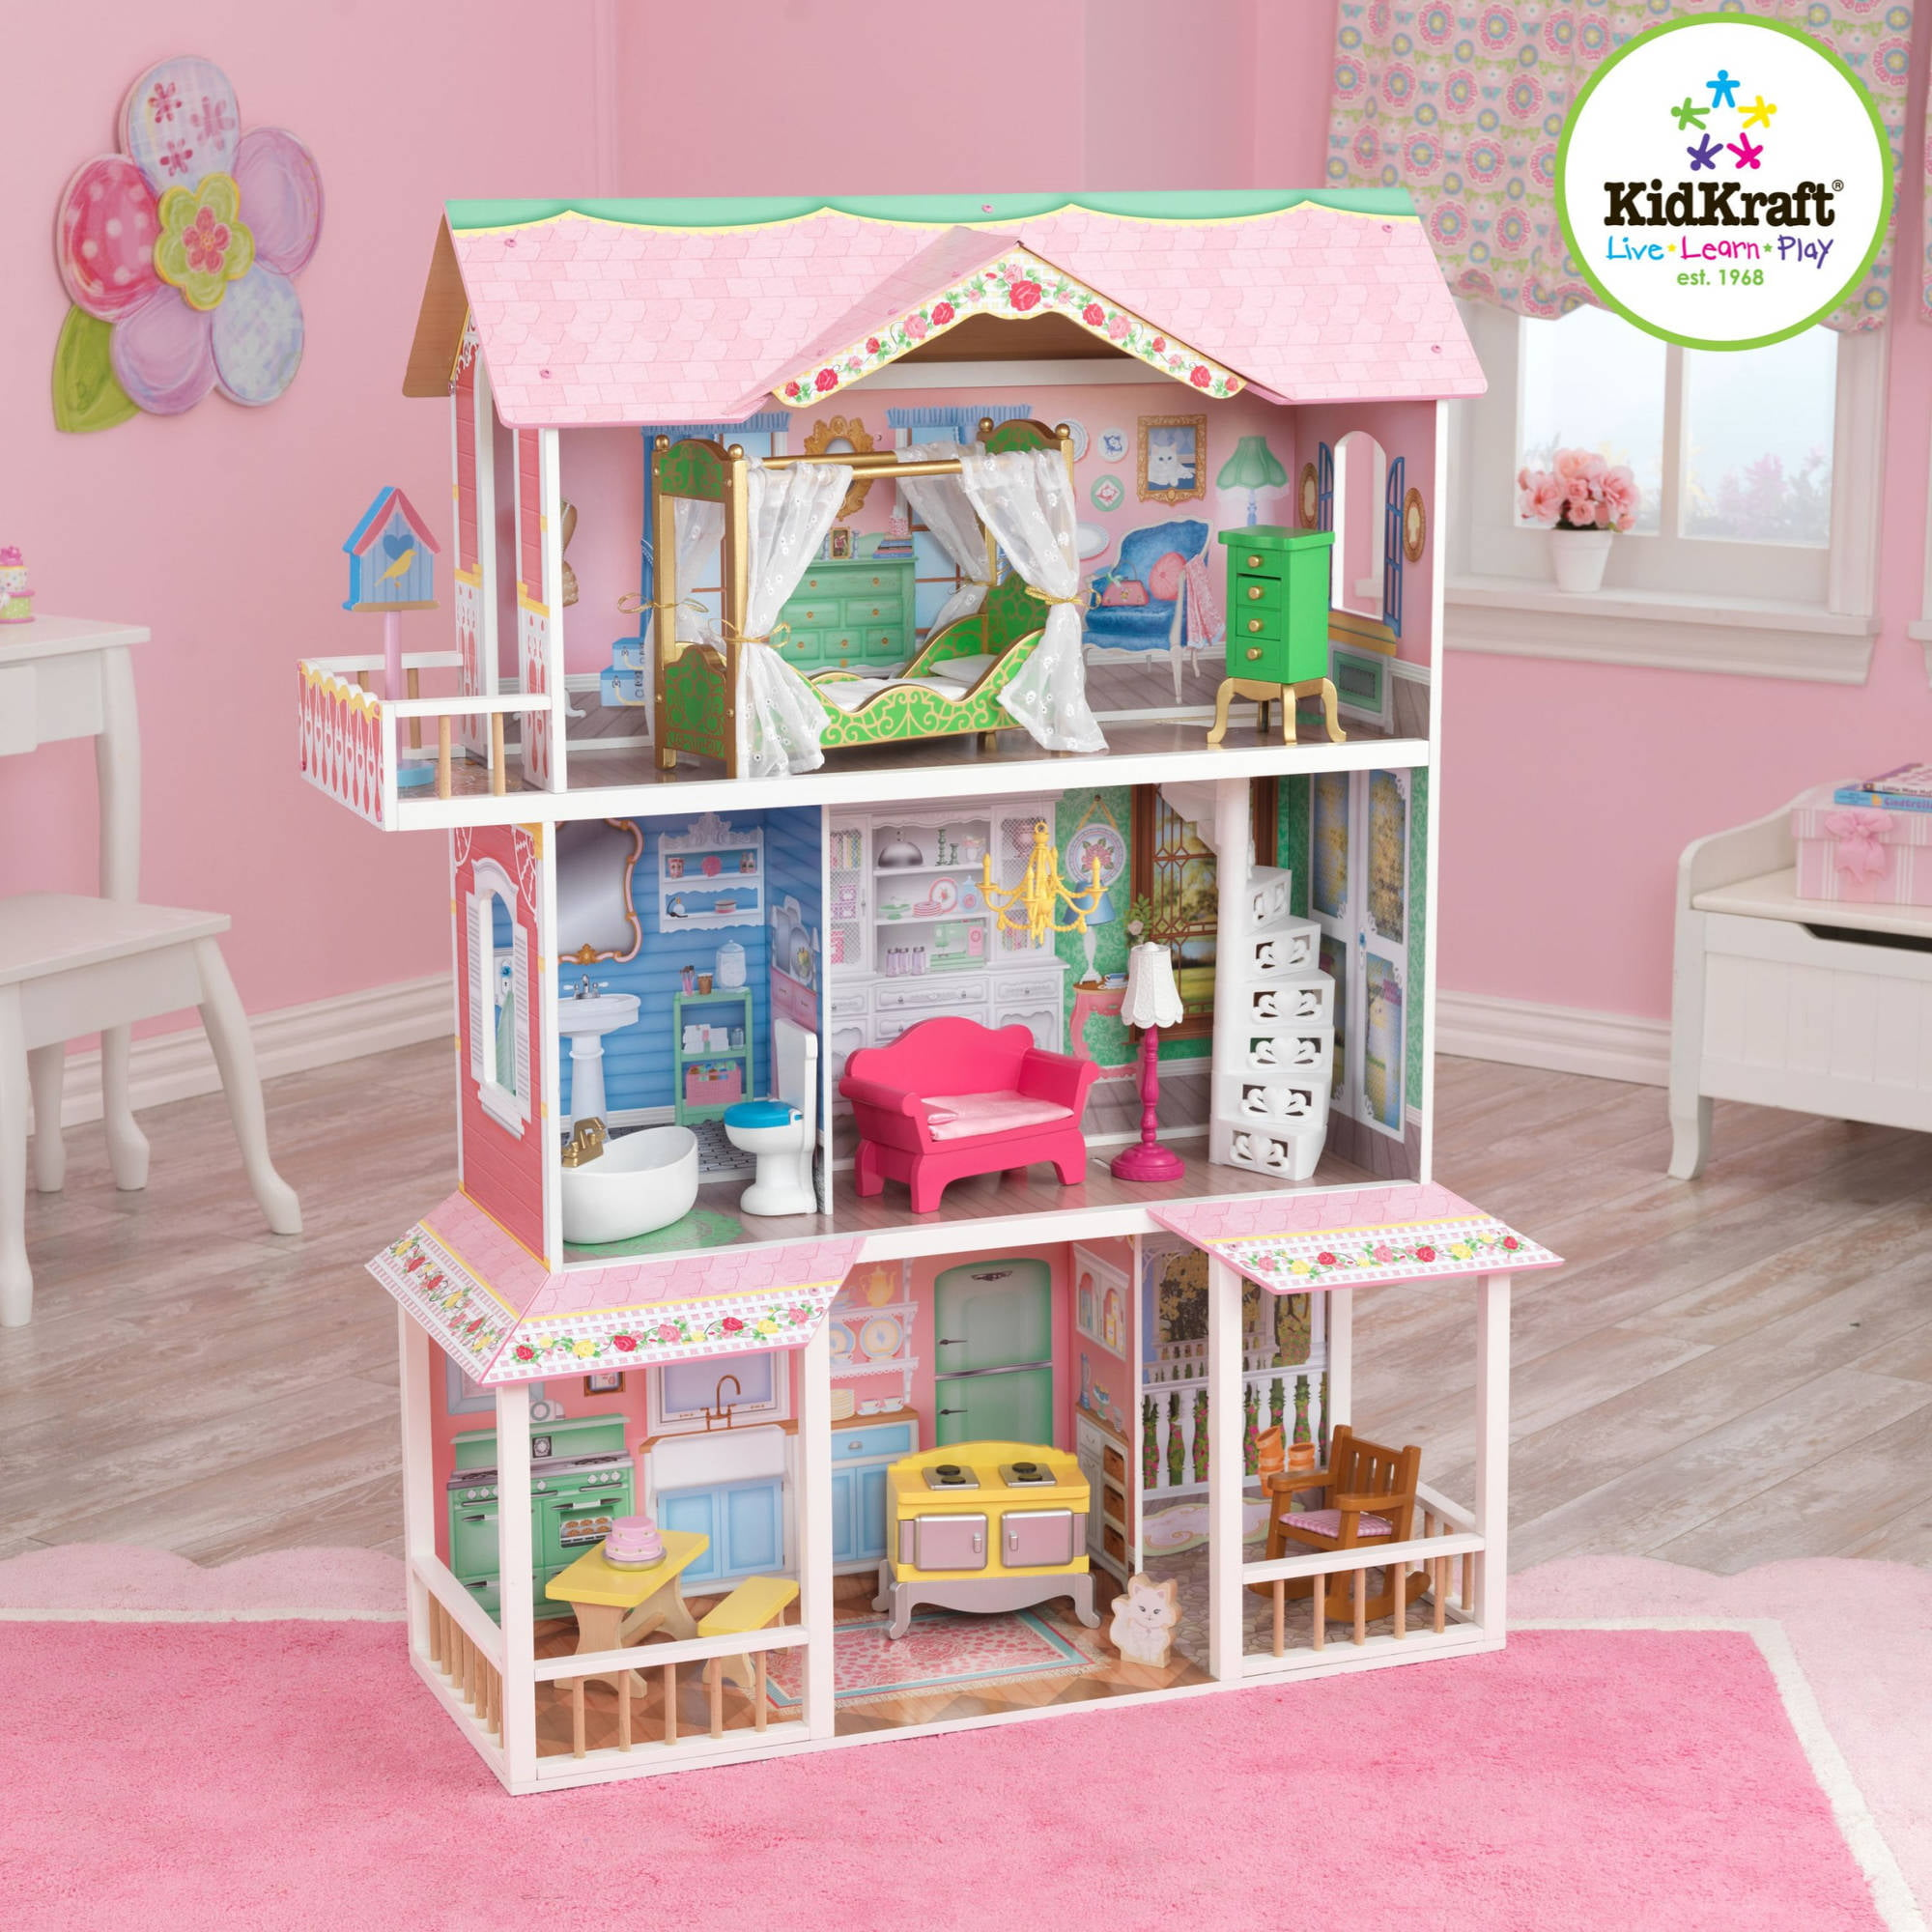 Kidkraft Sweet Savannah Wooden Dollhouse With 13 Pieces Of Furniture